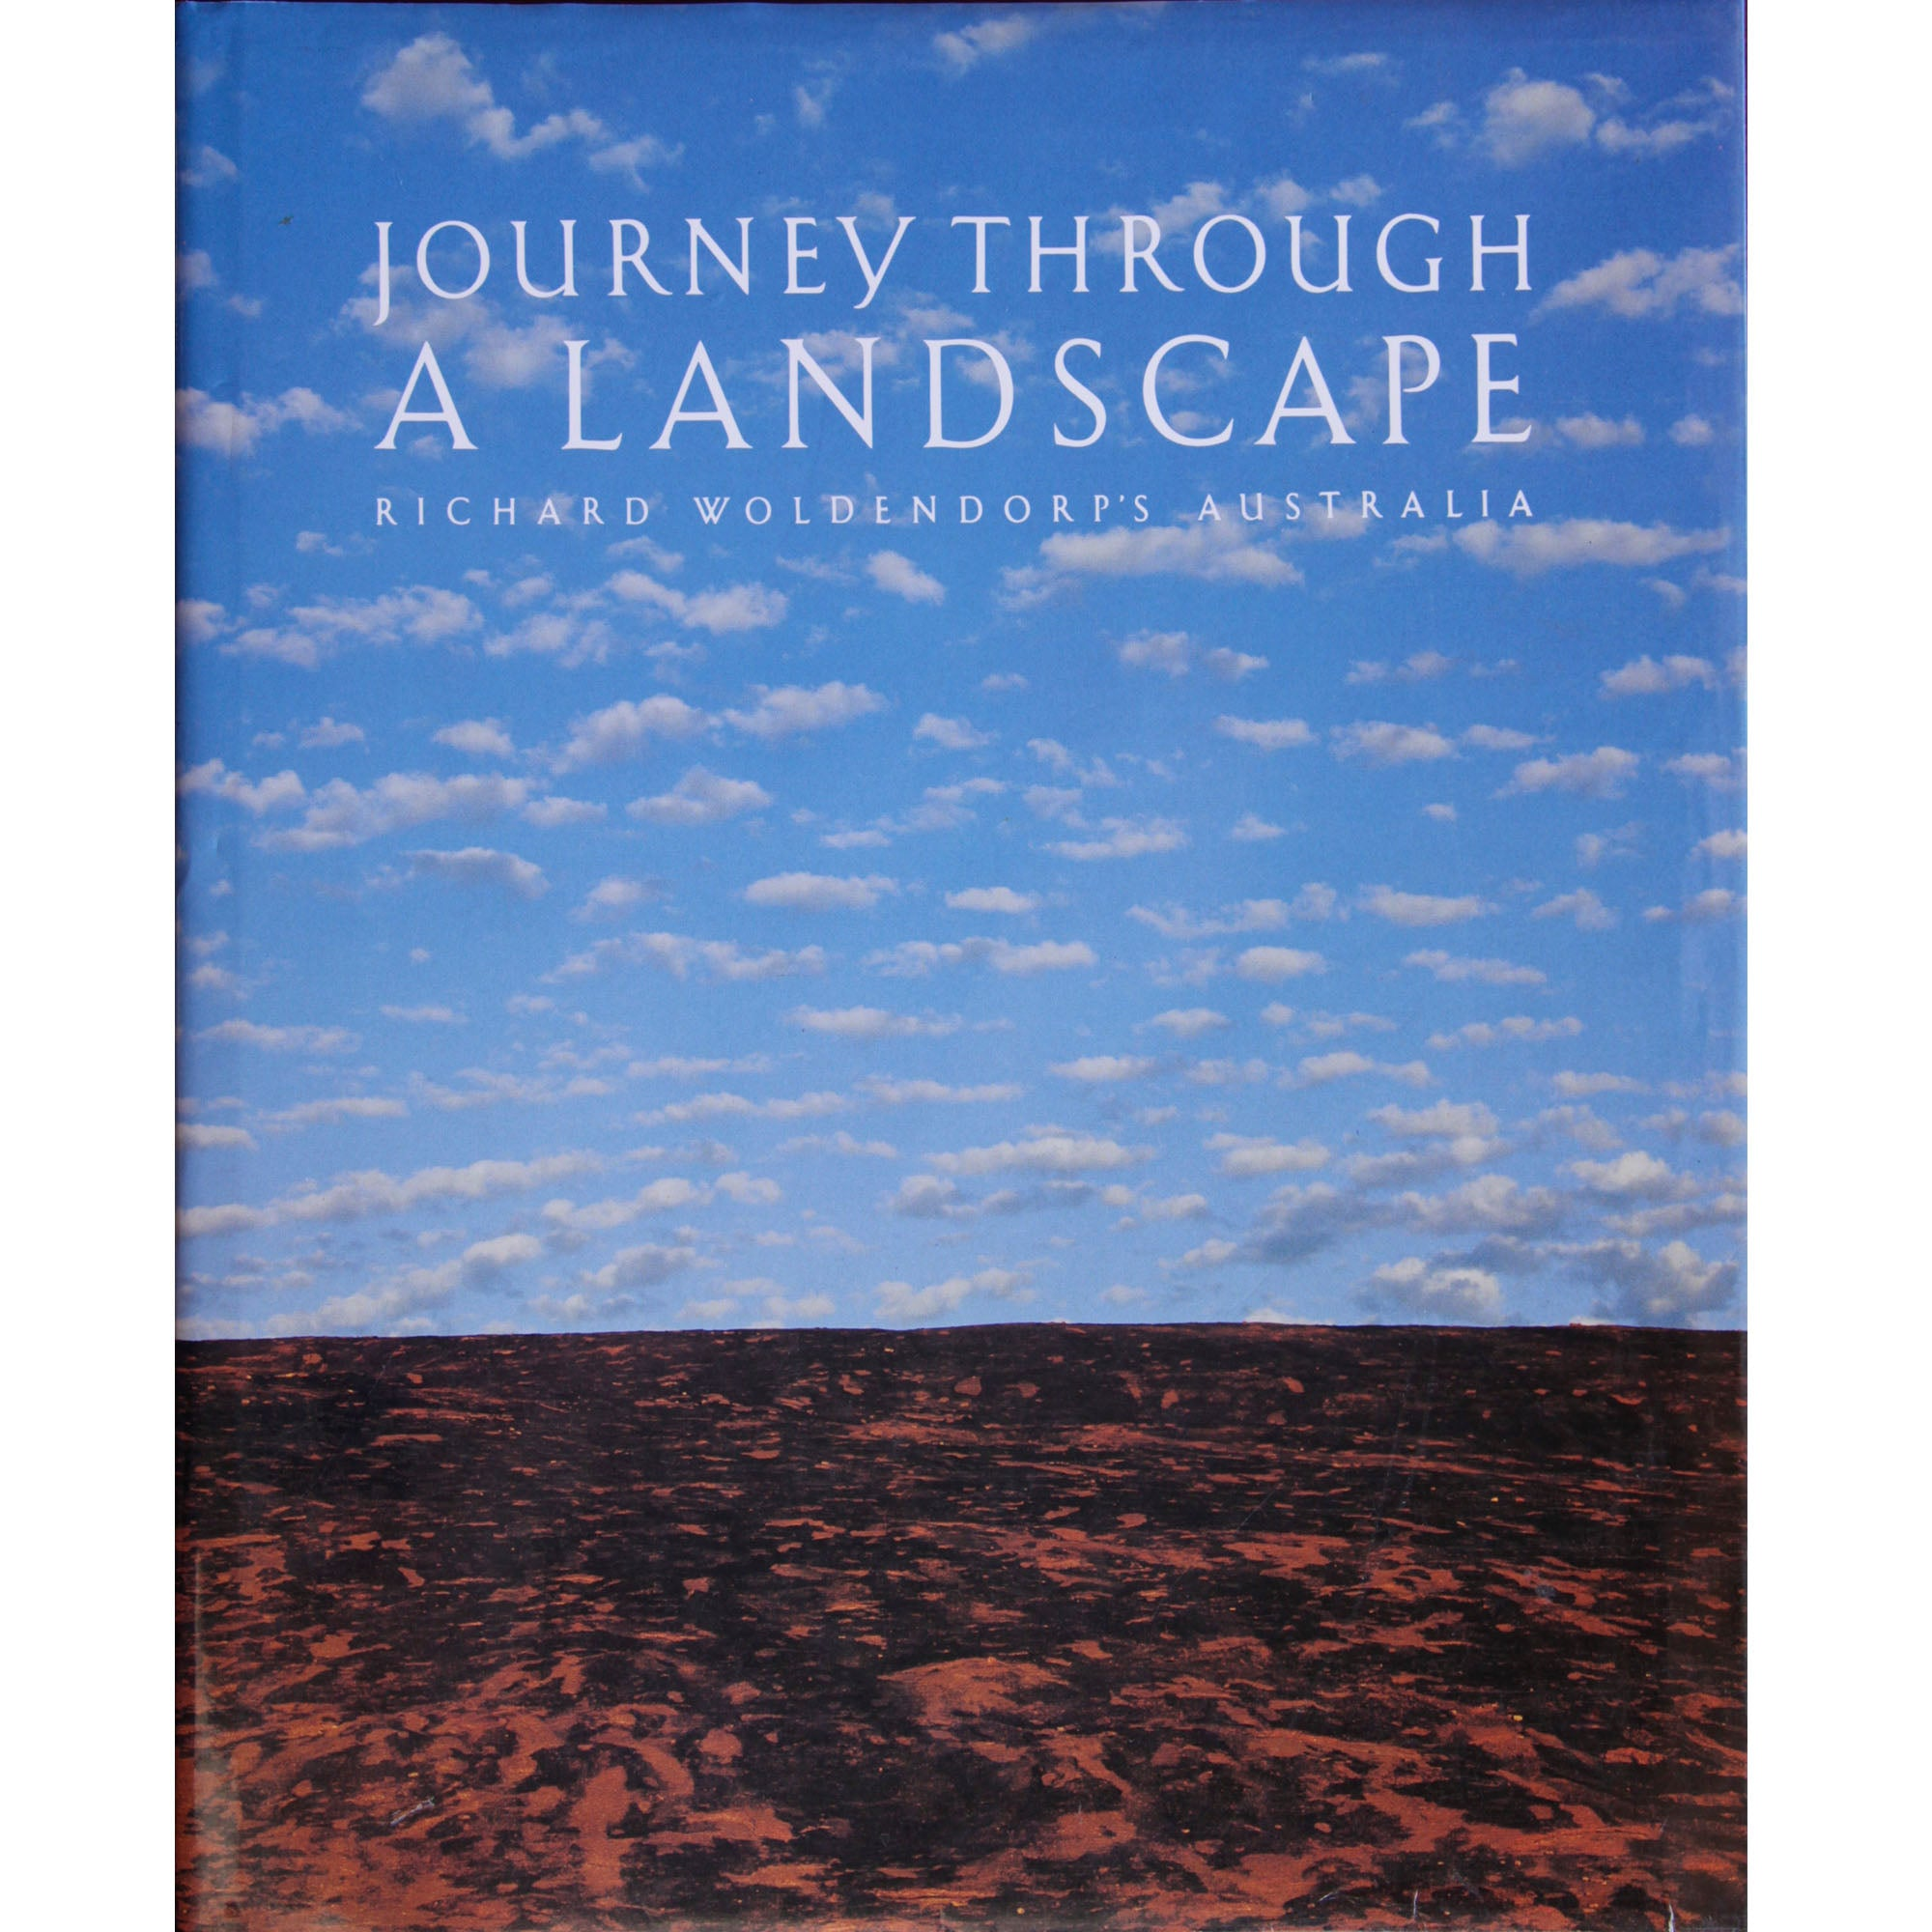 Richard Woldendorp -  'Journey Through The Landscape' Book  (rwo157)